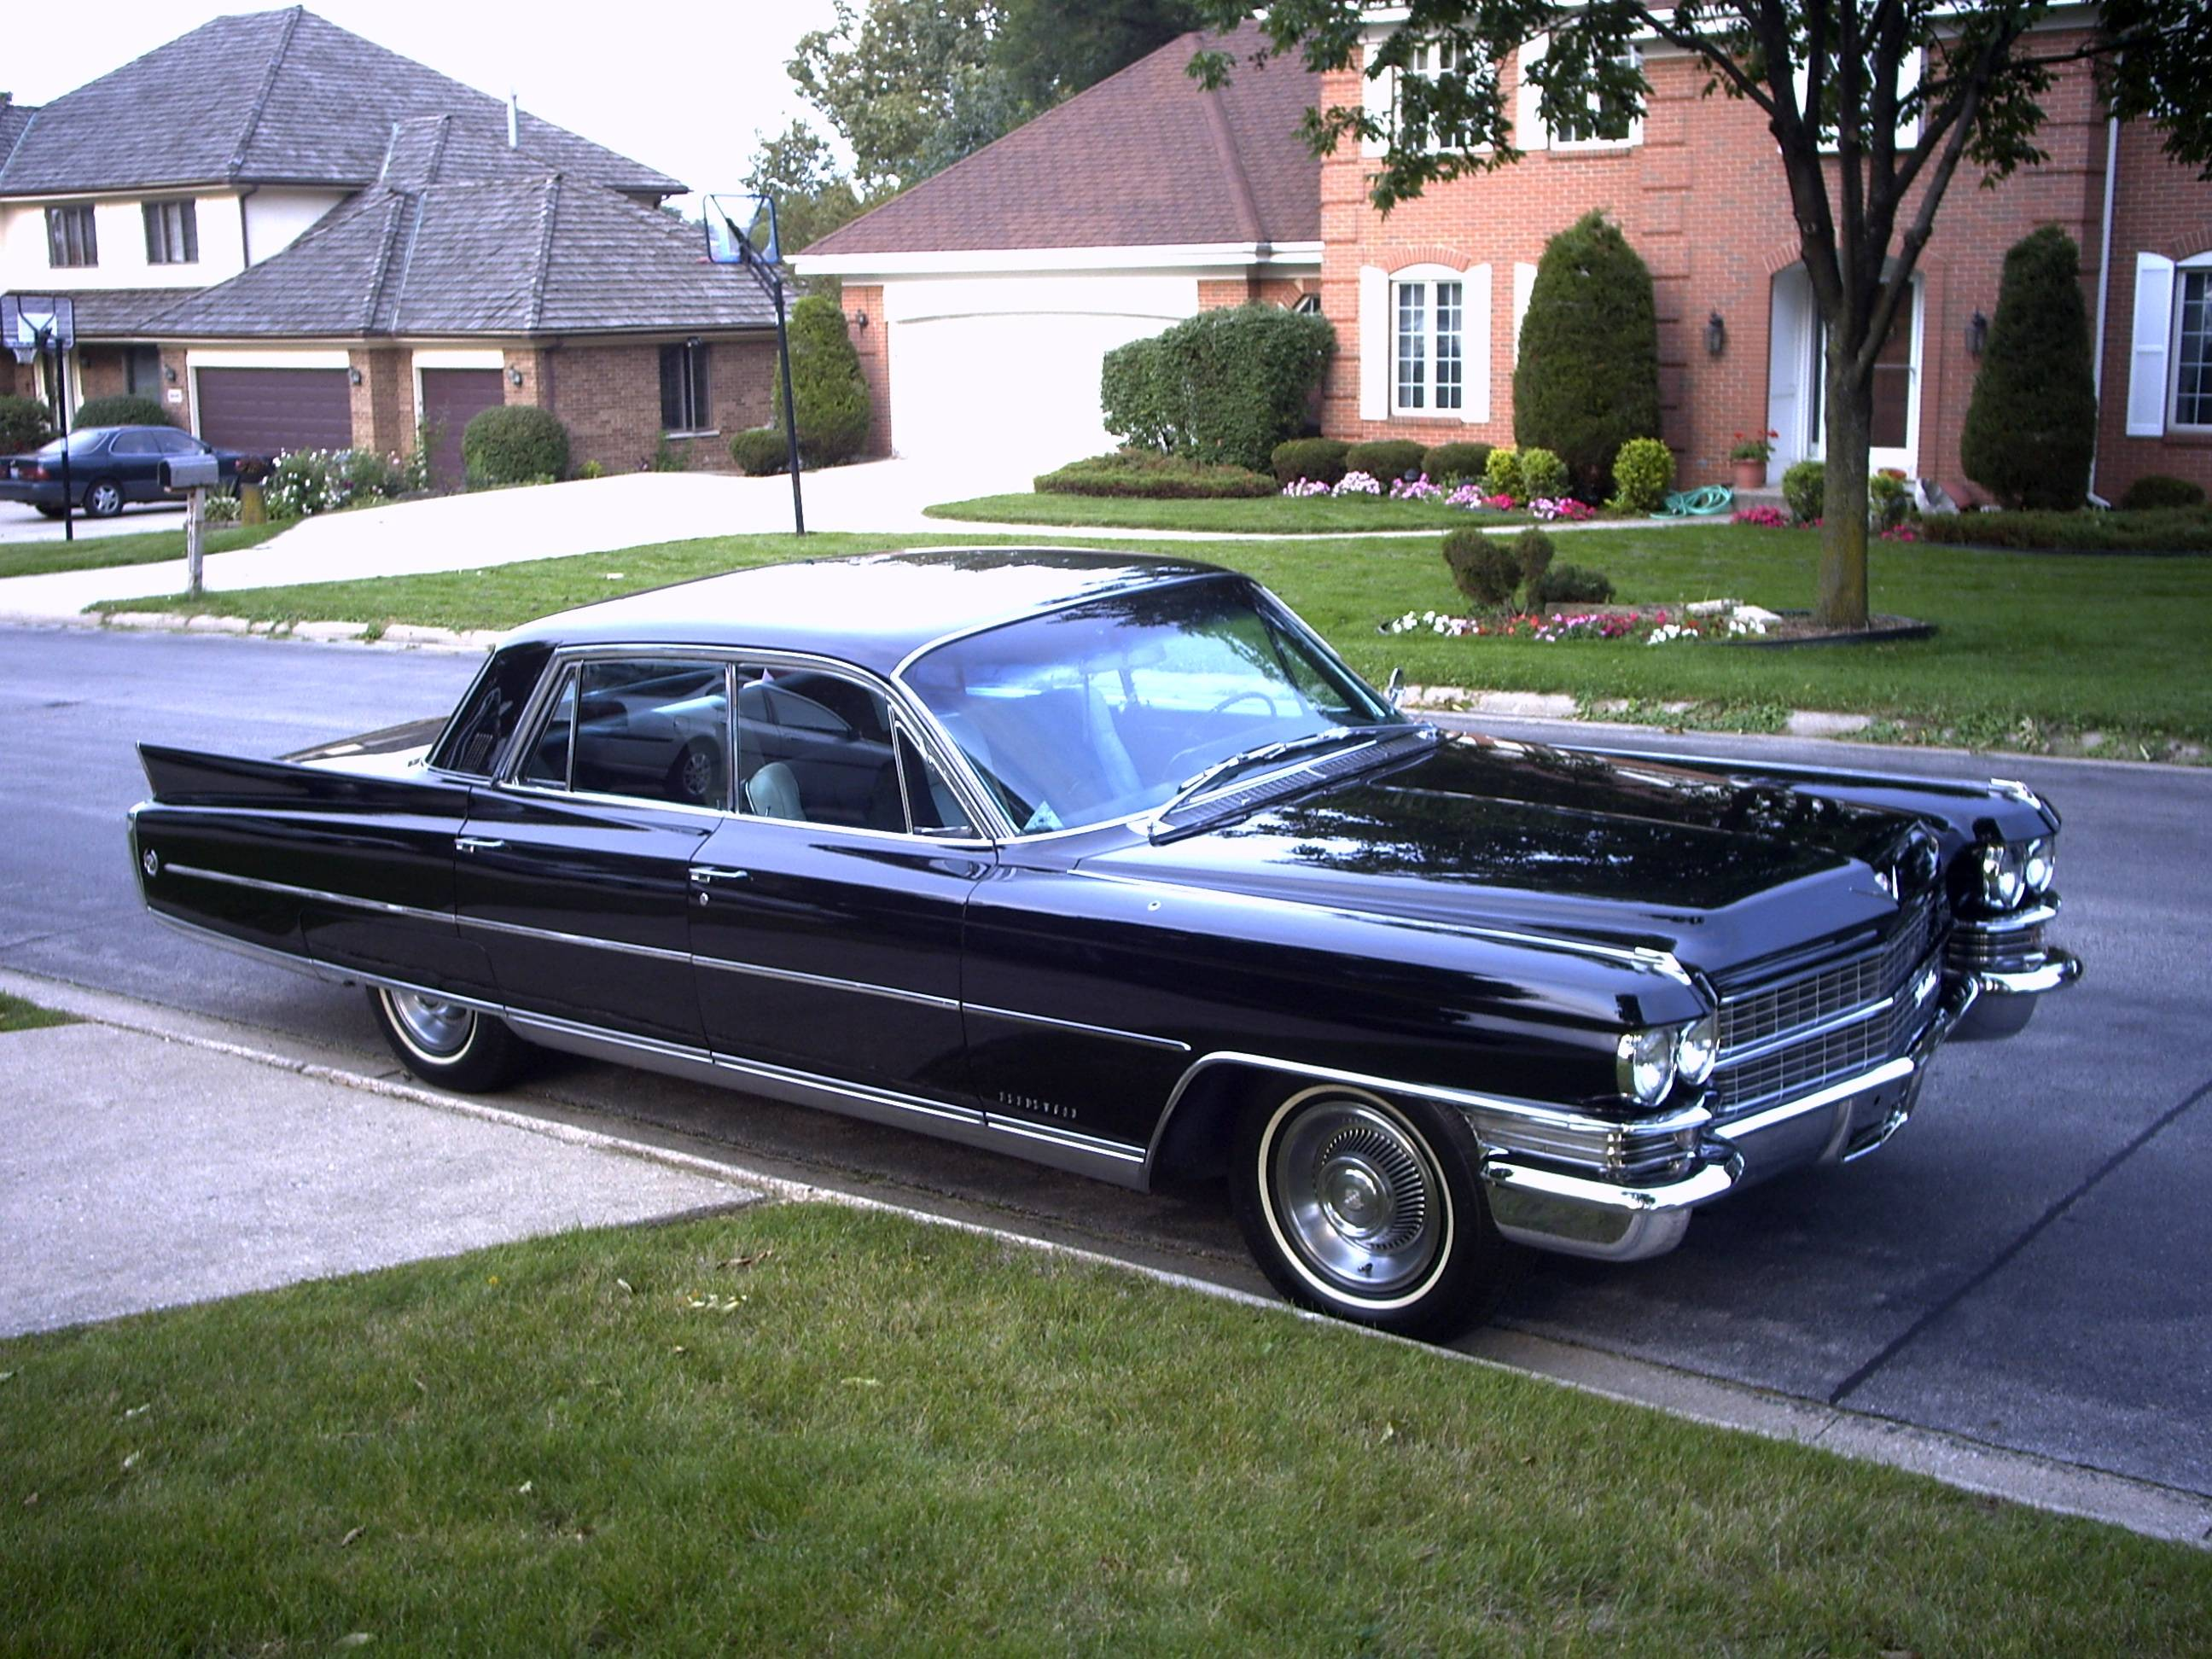 photos information fleetwood zombiedrive cadillac for and sale